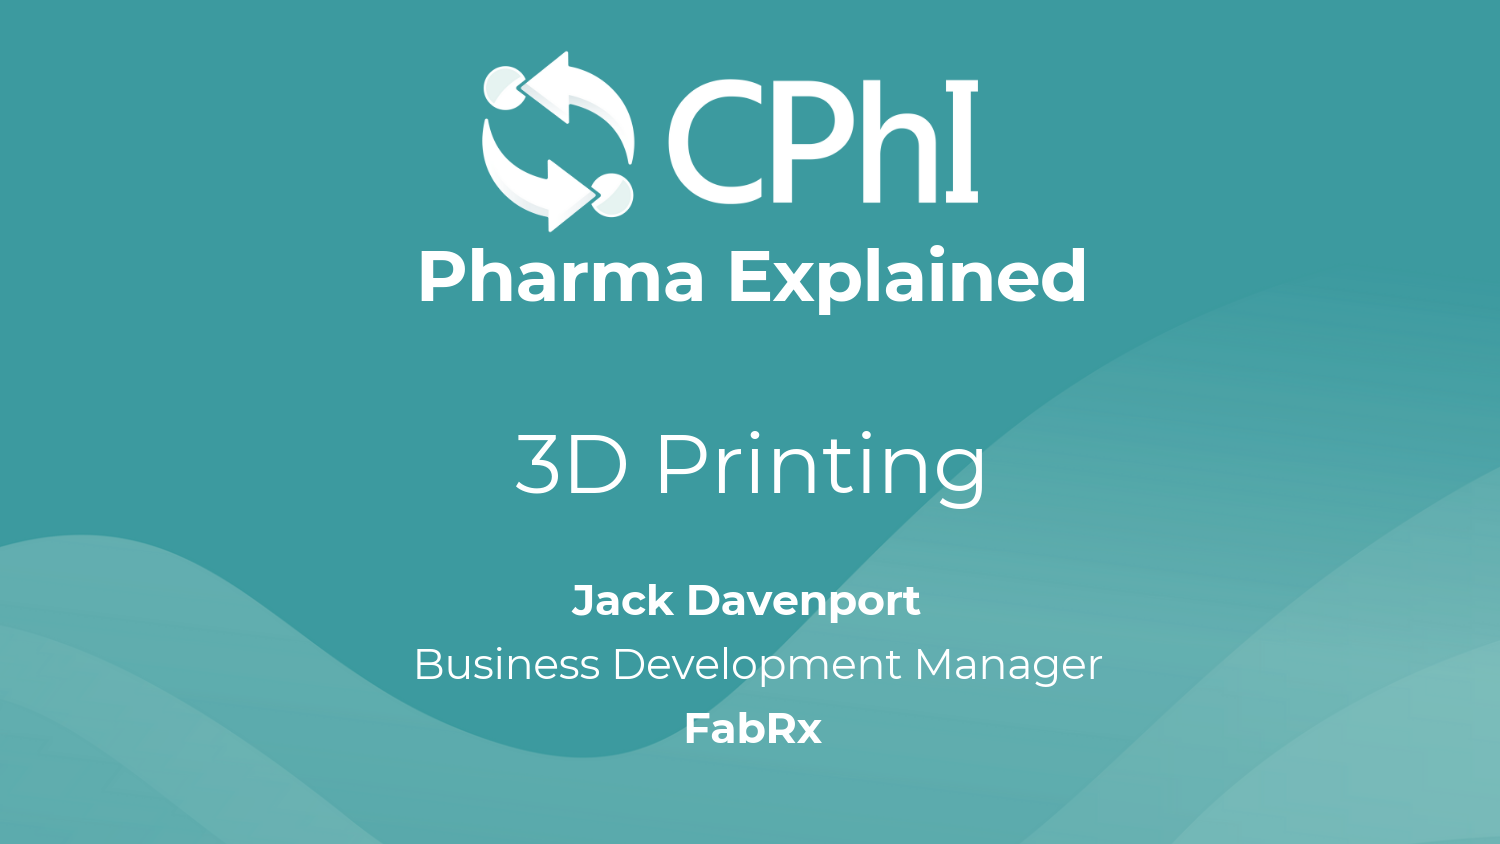 Pharma Explained: What does 3D Printing actually mean for Pharmaceuticals?